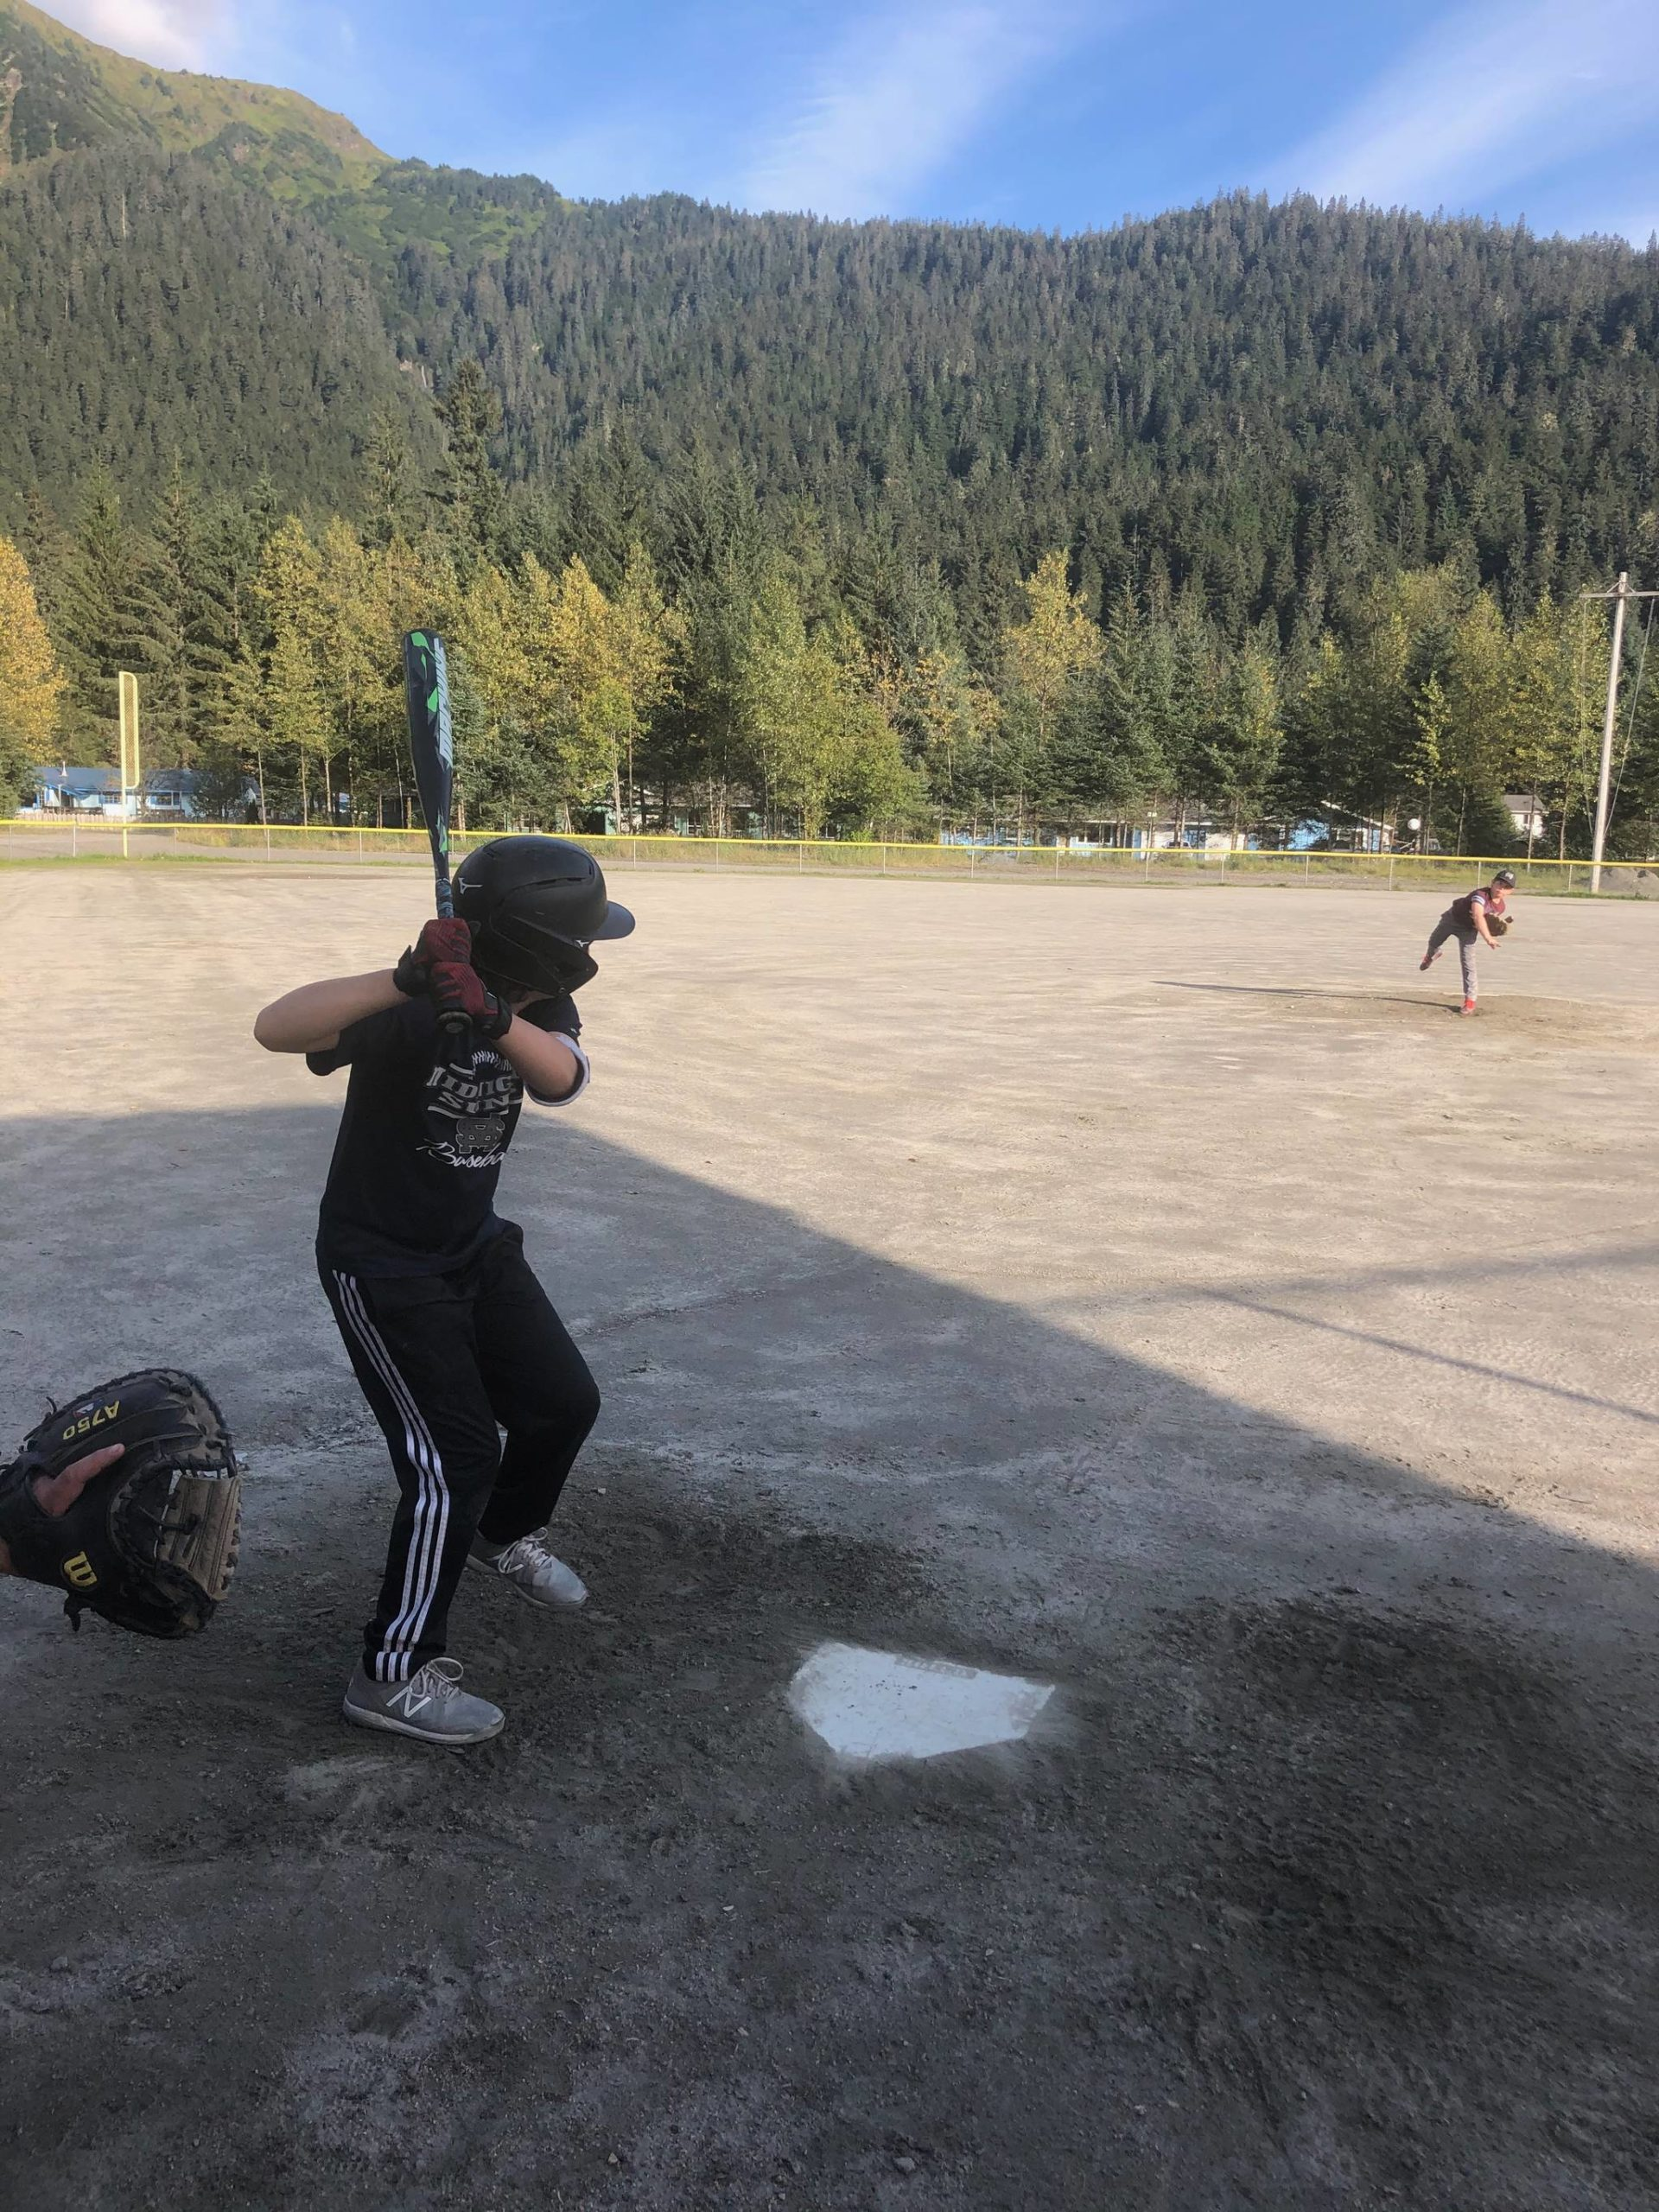 After COVID-19 sidelined a competitive season last summer, local players gathered to play sandlot ball. Thanks to a city-approved COVID-19 mitigation plan, the Gastineau Channel Baseball and Softball Leagues are planning a full, competitive season this summer. The season is expected to begin in March or April, depending on field conditions. (Courtesy photo/Geoff Kirsch)